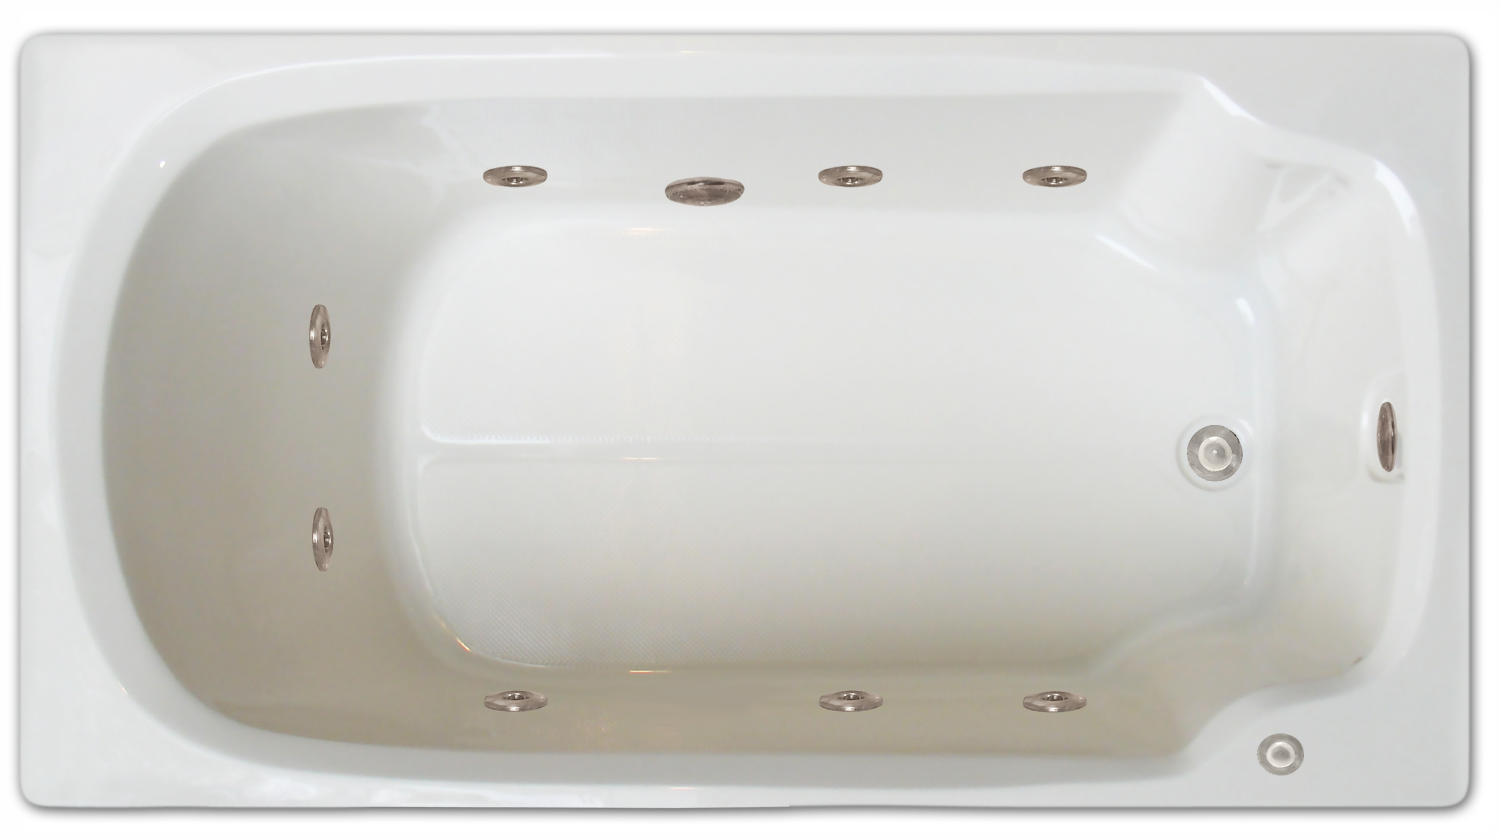 Cool 60 Inch Whirlpool Tub Gallery Best Inspiration Home